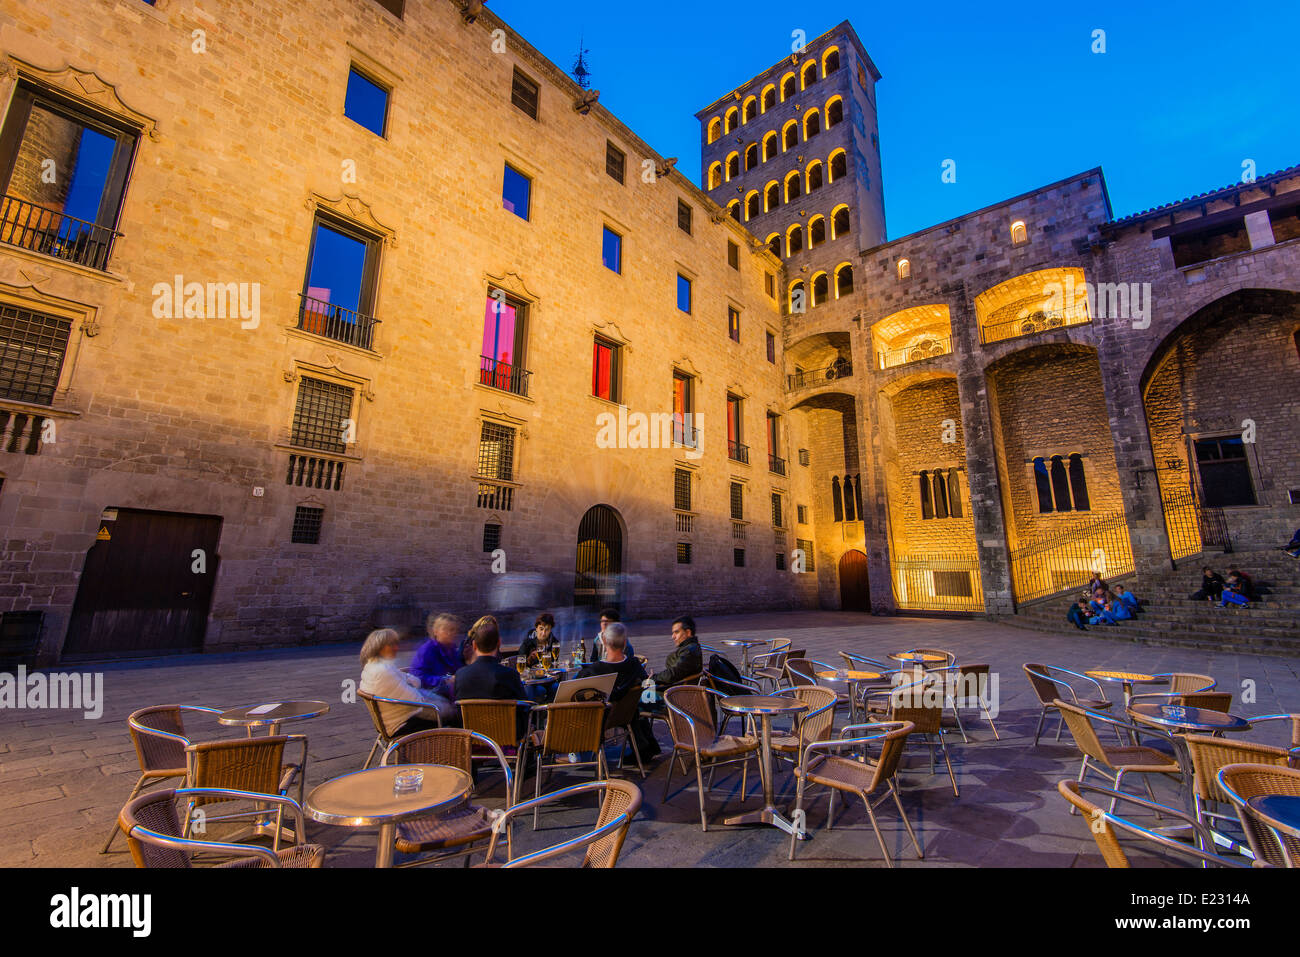 People seated in an outdoor cafe in Plaza del Rey or Placa del Rei, Barcelona, Catalonia, Spain - Stock Image